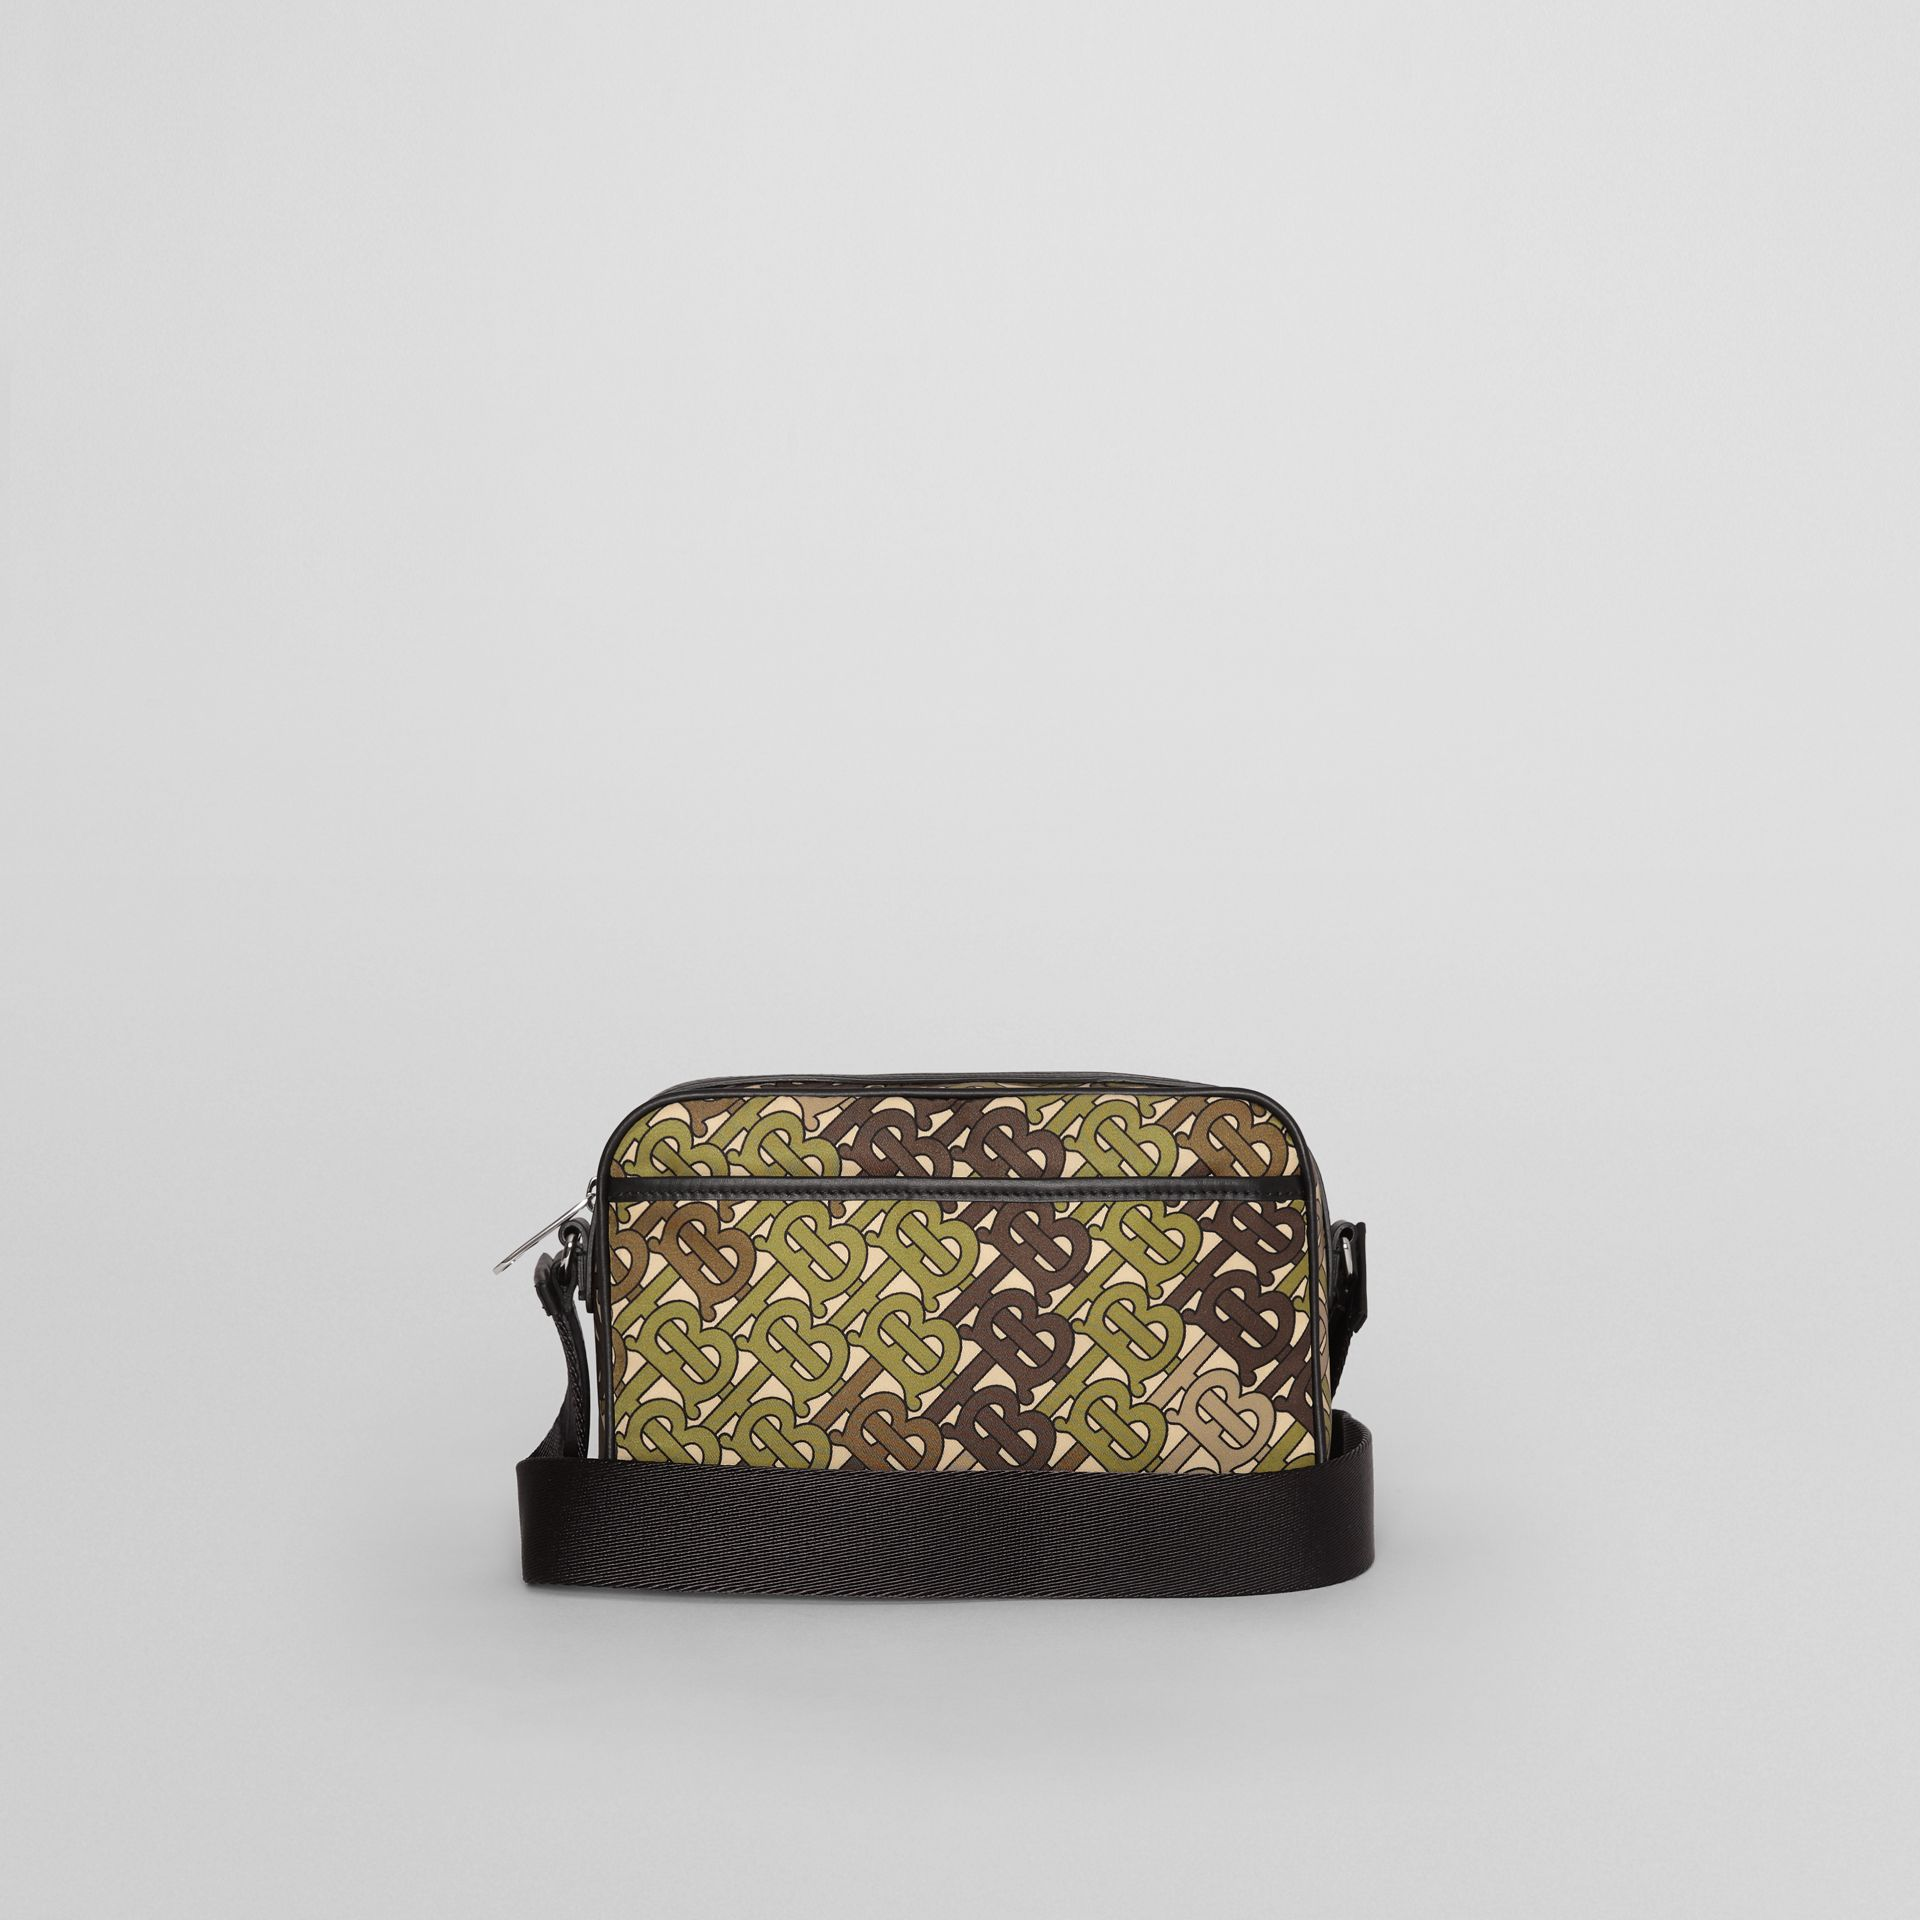 Monogram Print and Leather Crossbody Bag in Khaki Green - Men | Burberry Singapore - gallery image 7